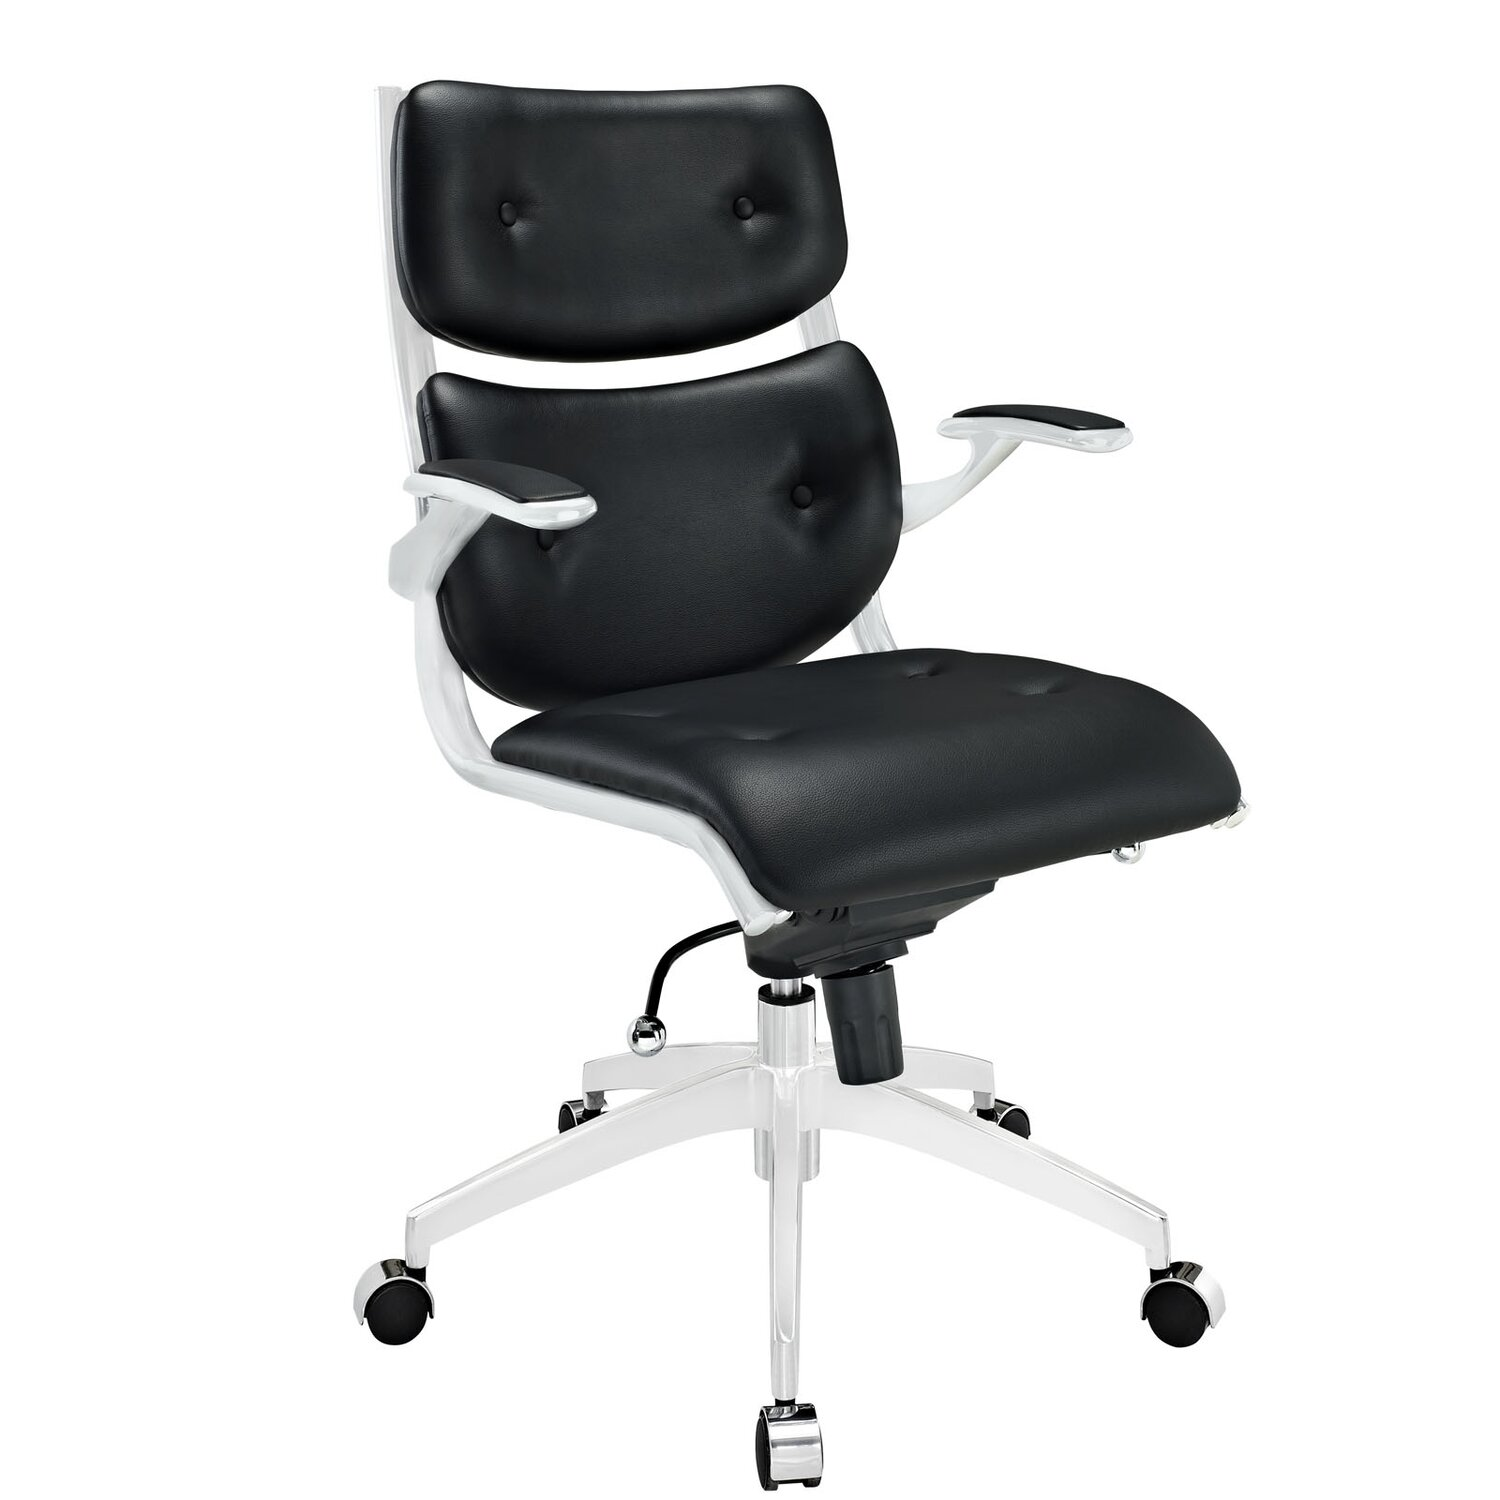 Compact Office Chair Push Mid-back Office Chair by